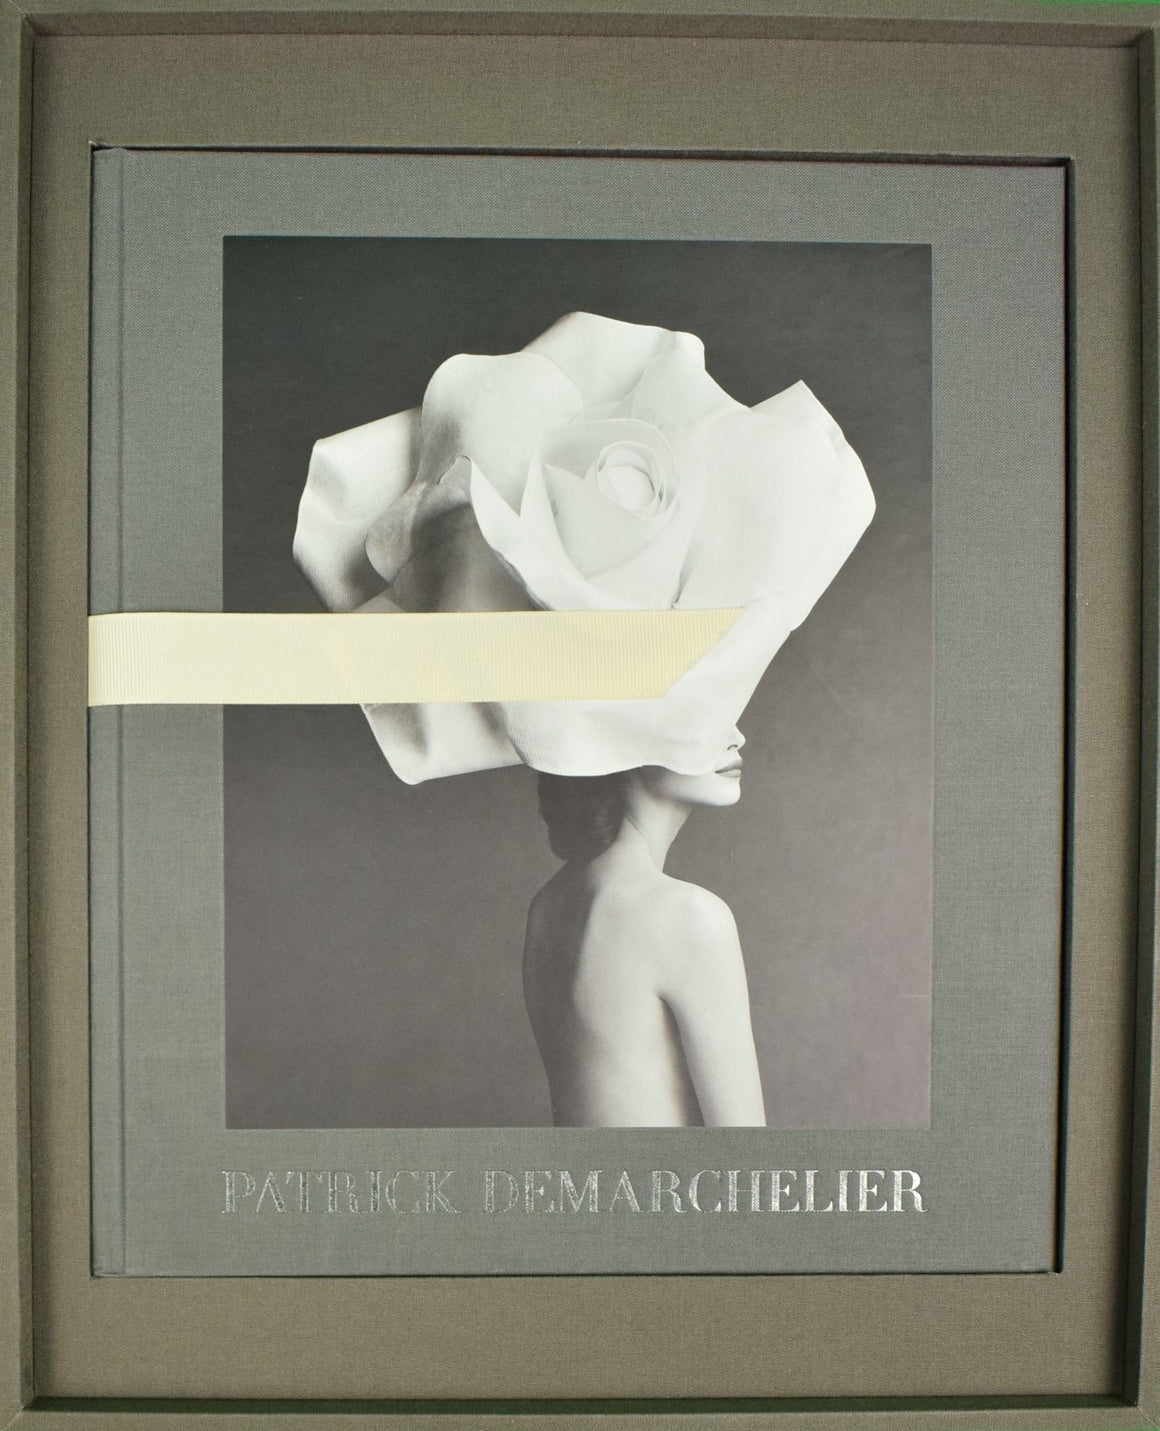 """Patrick Demarchelier"" (Signed!) 2008 Ltd Edition 137/150 in Clamshell Box"